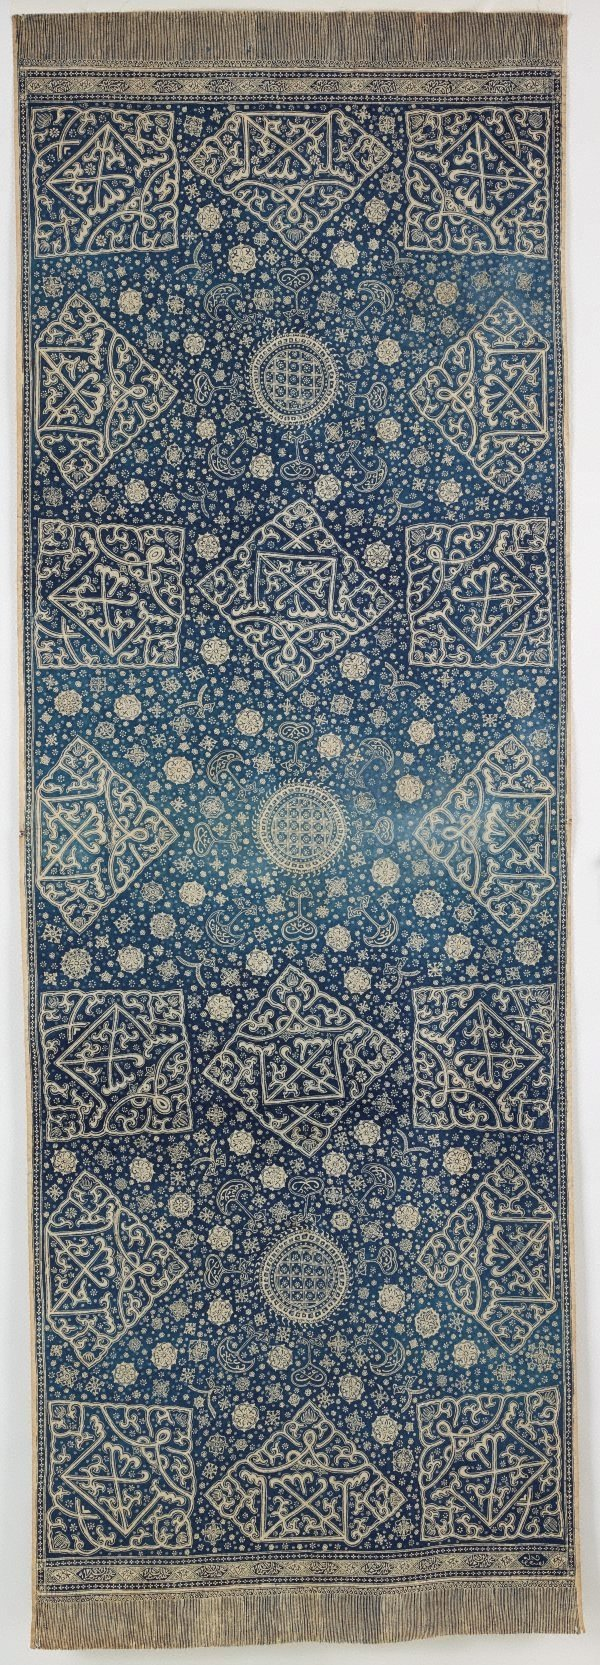 An image of Cloth with Islamic calligraphy